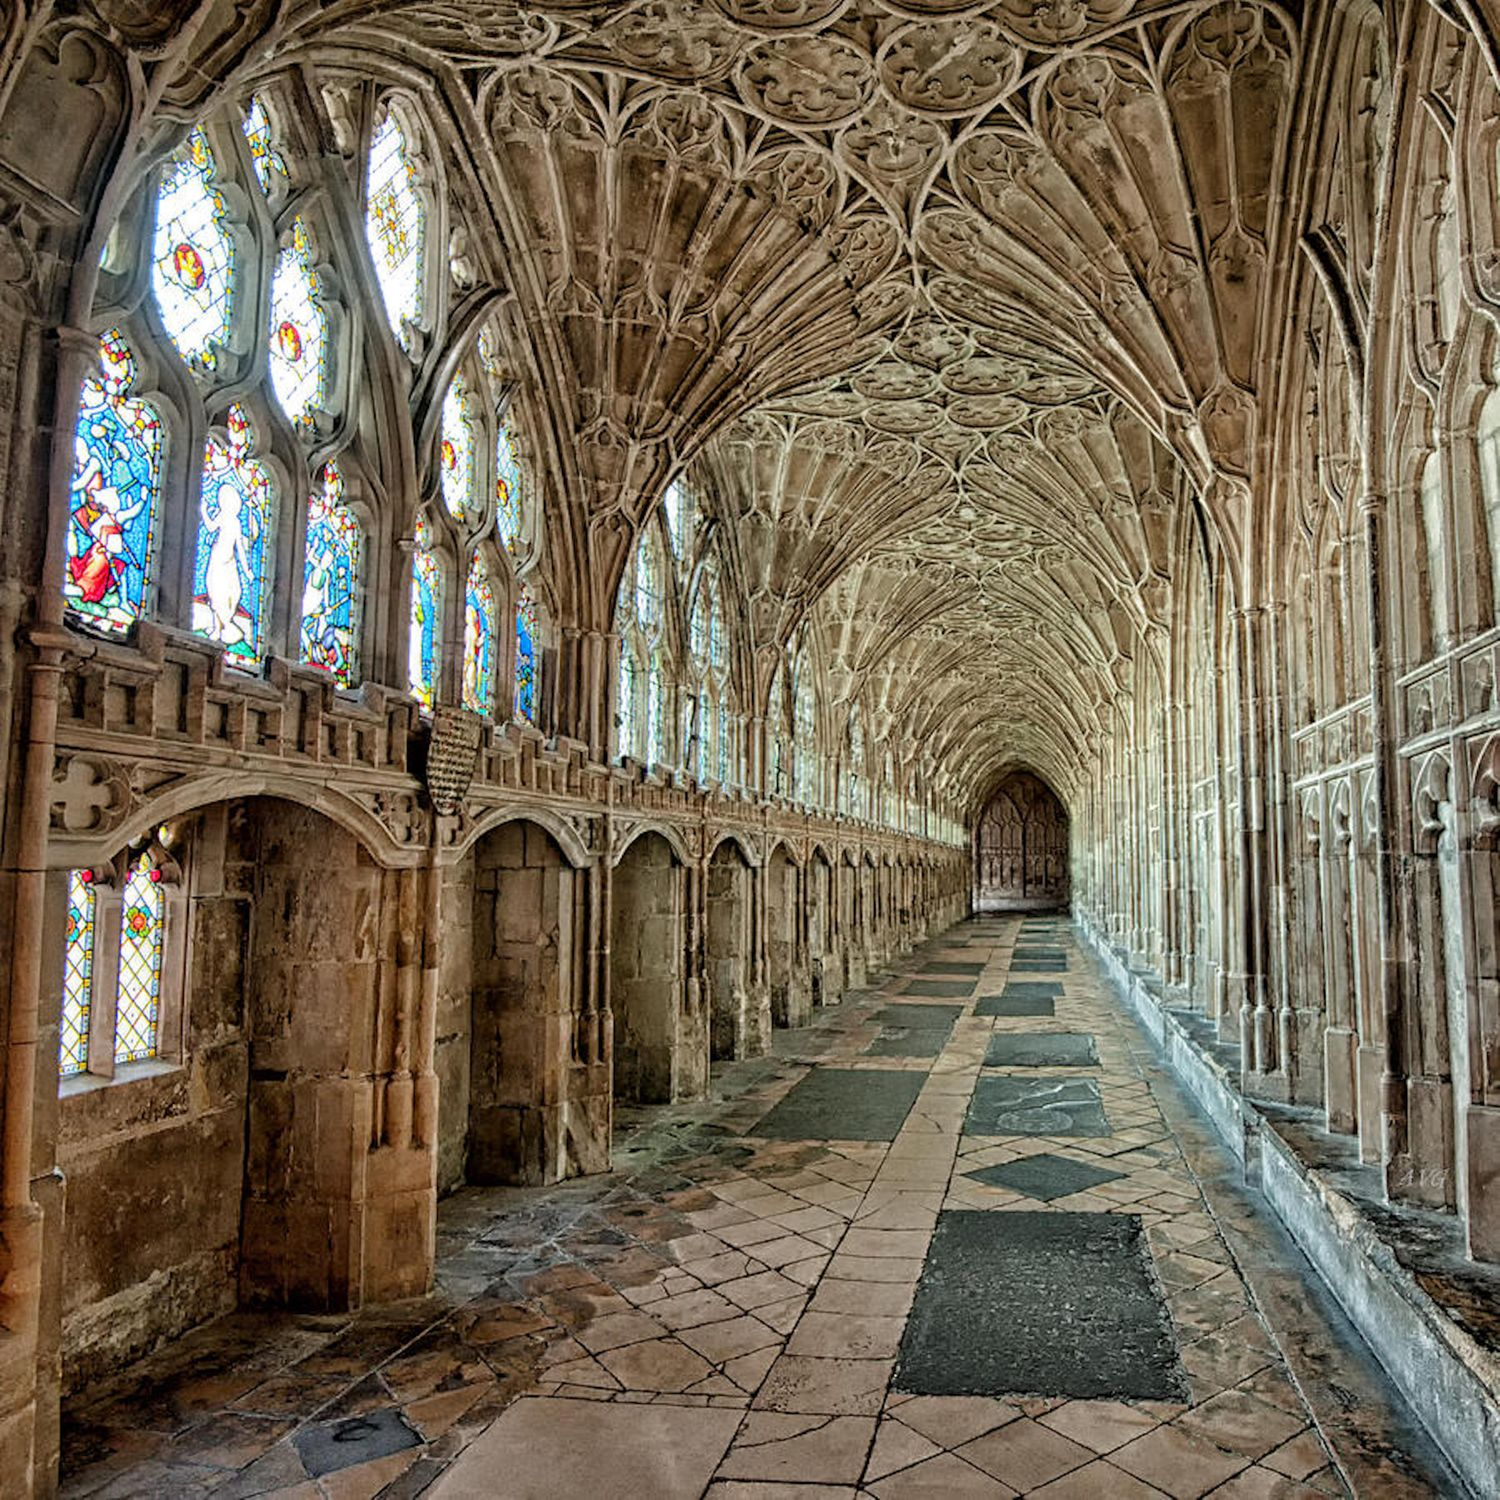 add my home address to google maps with New Contemporary Installation At Gloucester Cathedral on Grimm Grimm Daisy Dickinson Minus Pilots Wild Rani also 21st Century Hardwood Floors Inc further Serpentine Pavilion 2018 Designed By Frida Escobedo additionally Maui Island Atlas Maps besides T 34 85 Russian World War Ii Tank.